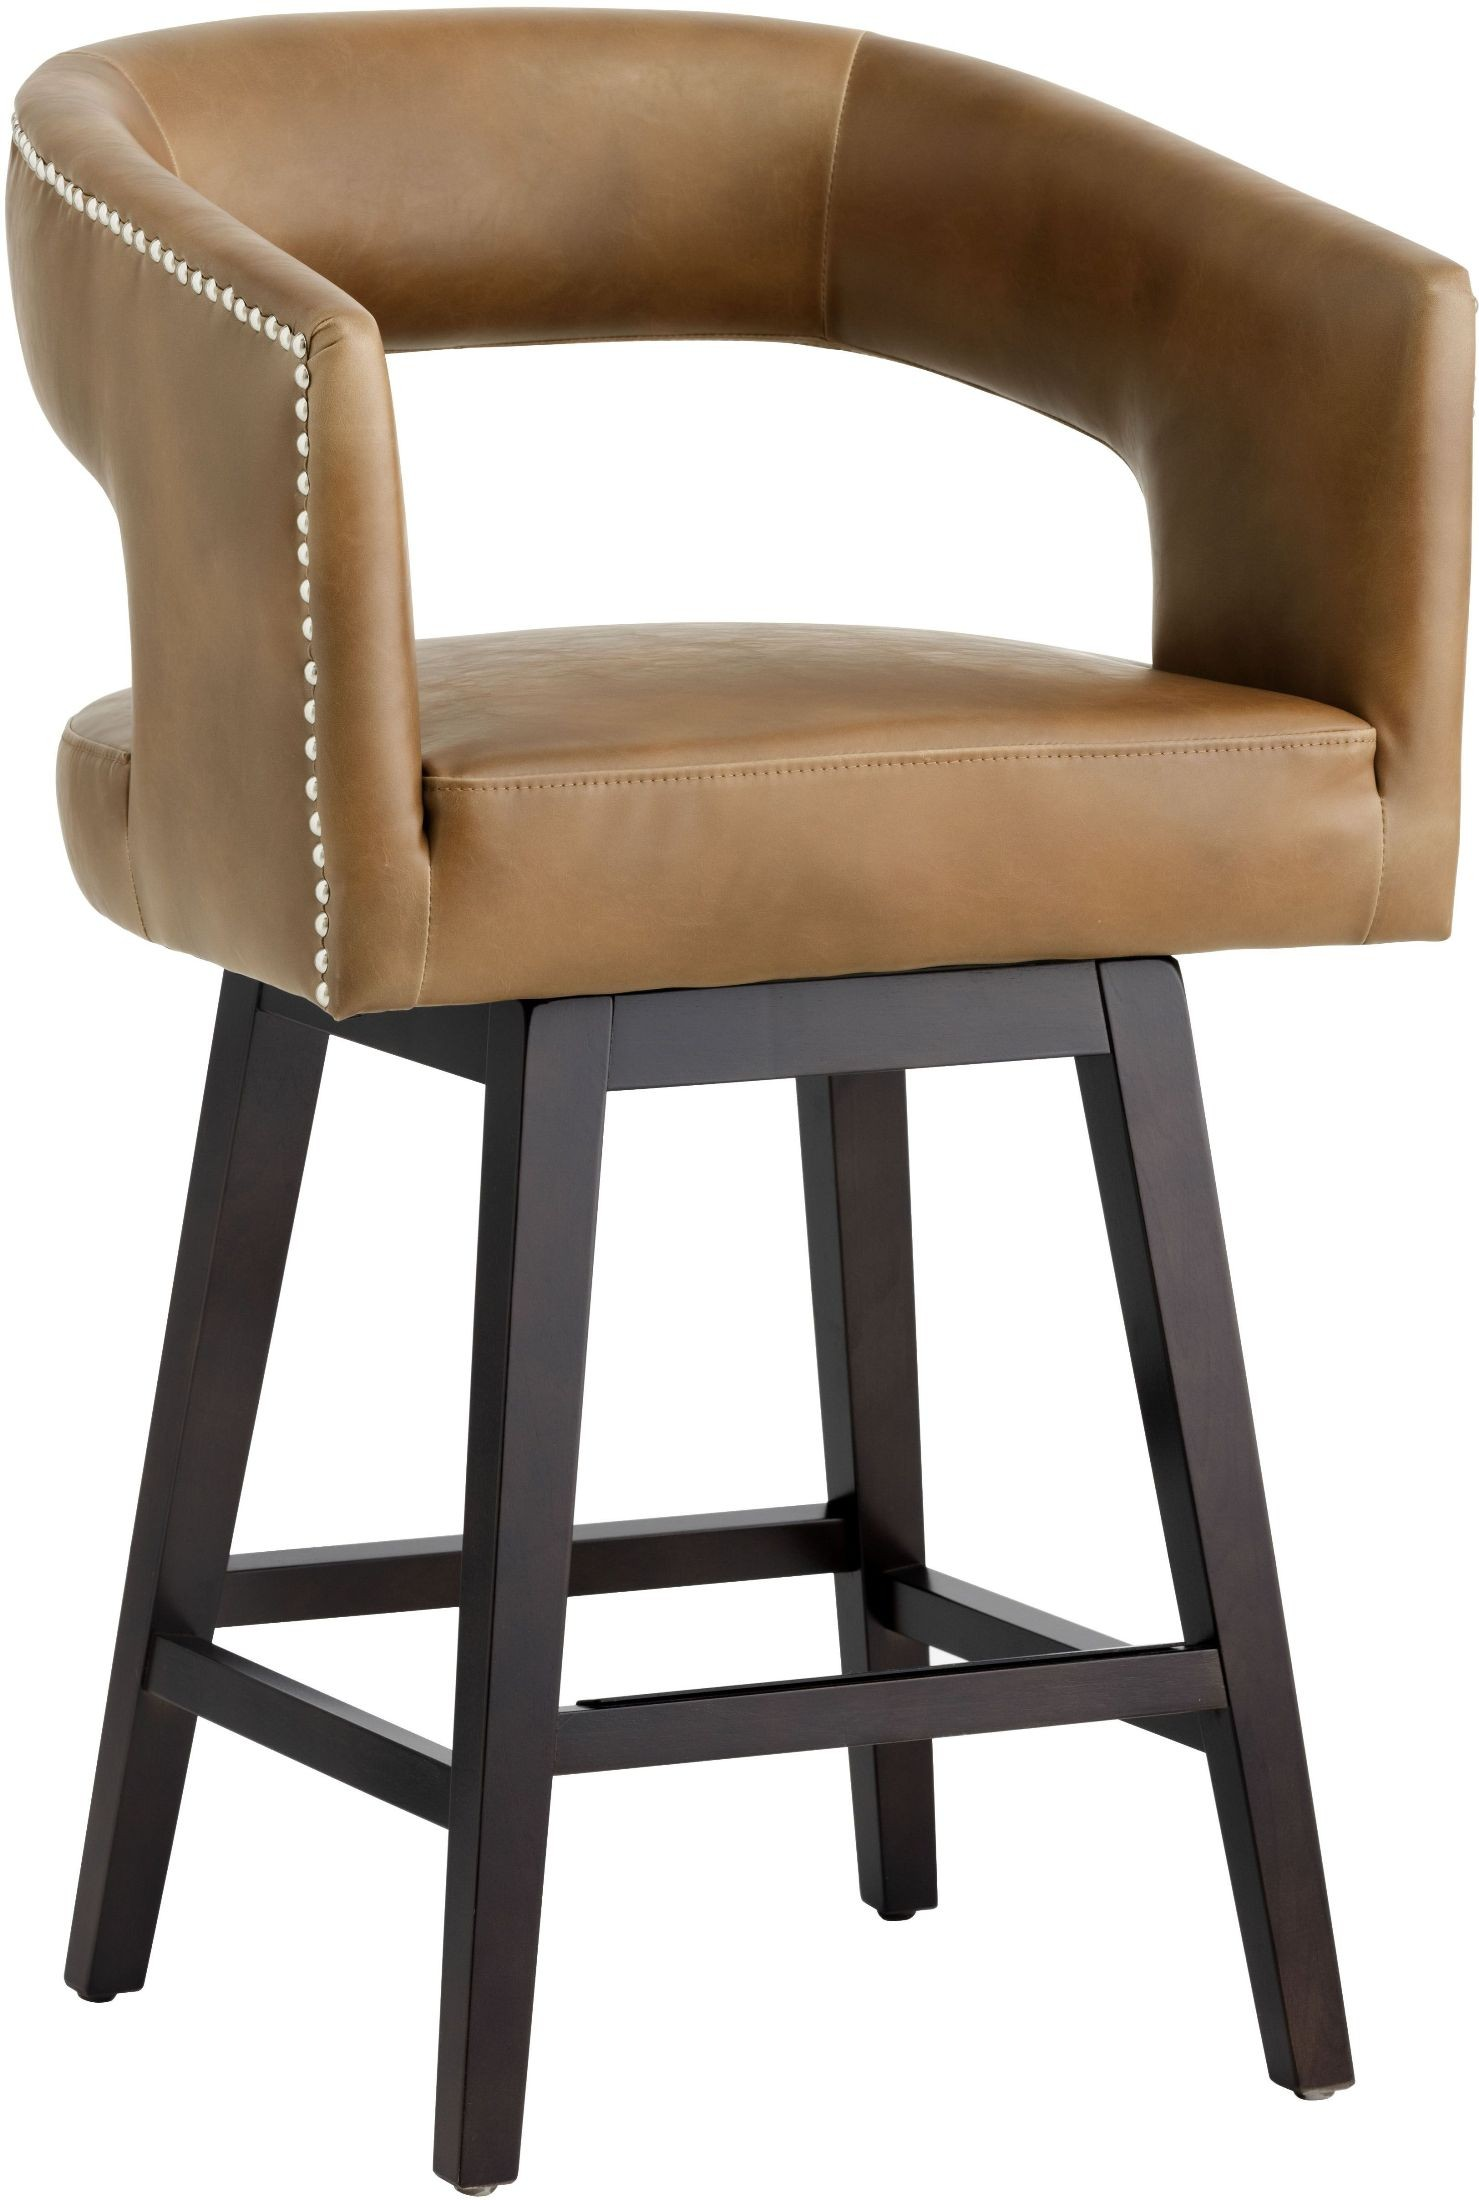 Draco Tobacco Tan Counter Stool From Sunpan Coleman